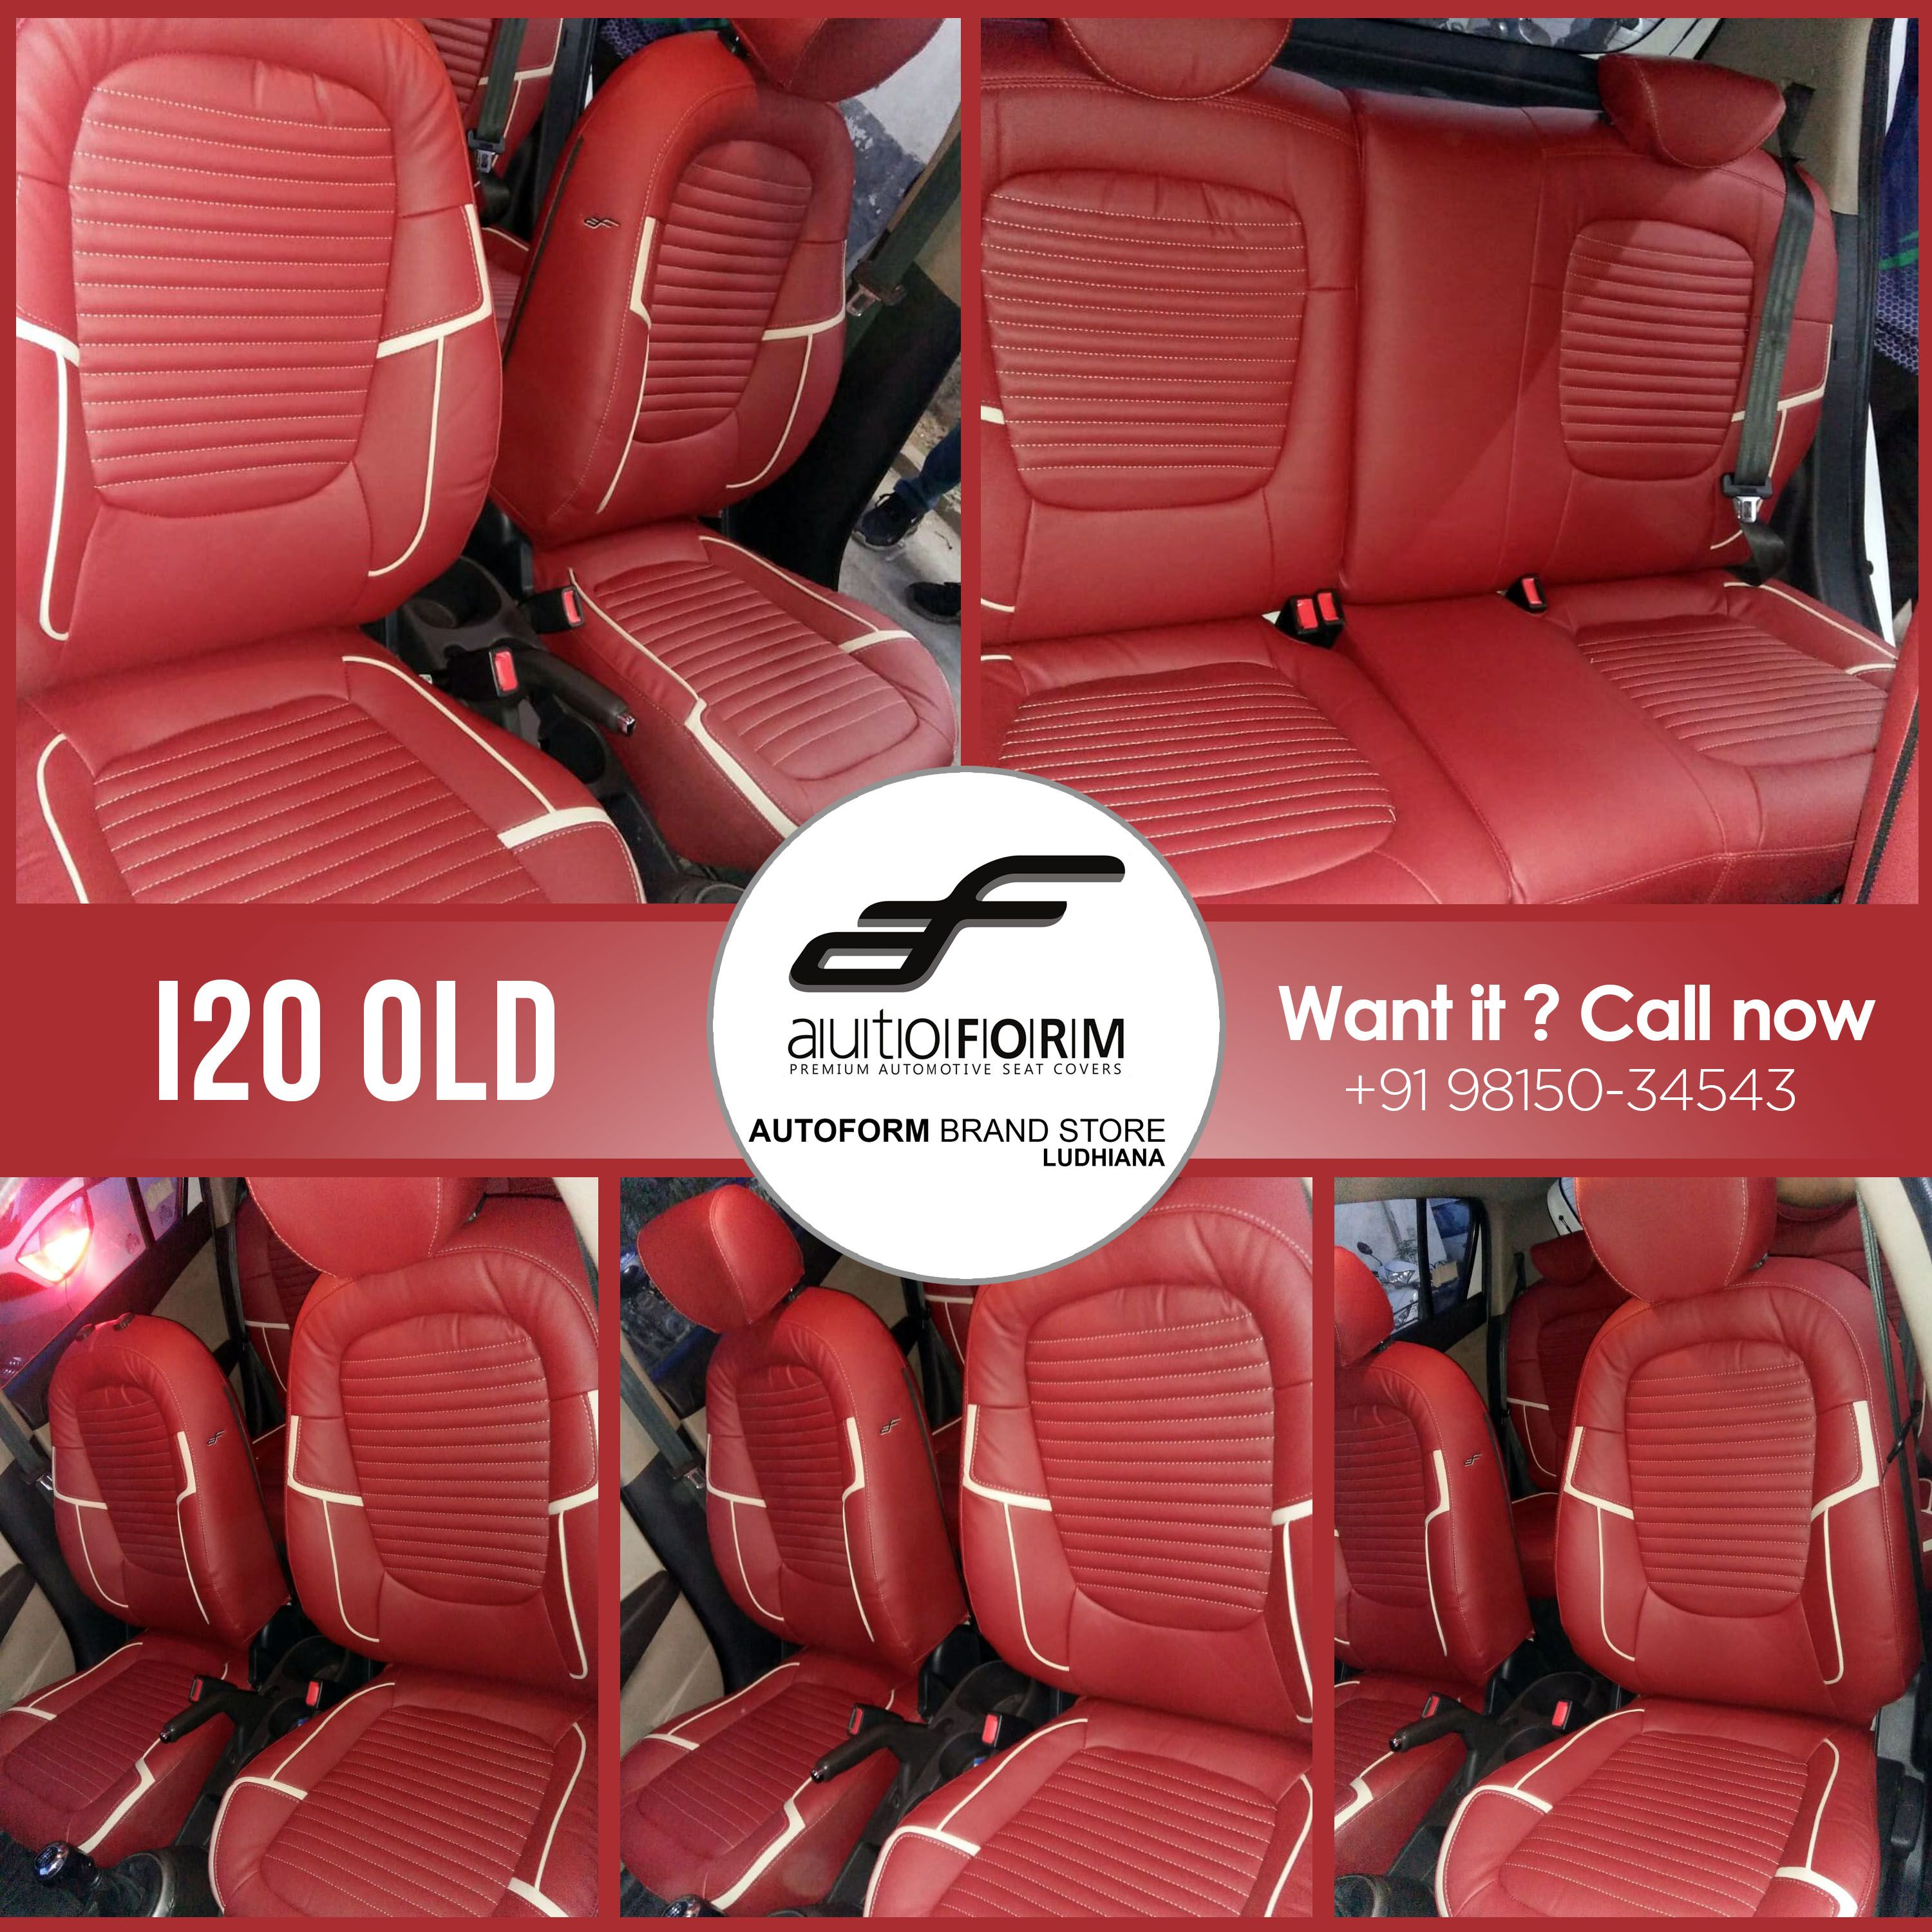 We Don T Forget The Older Models Autoform India Old Hyundai I20 Still Refreshes The Interior With Riviera Series Brand Brand Store Older Models Ludhiana